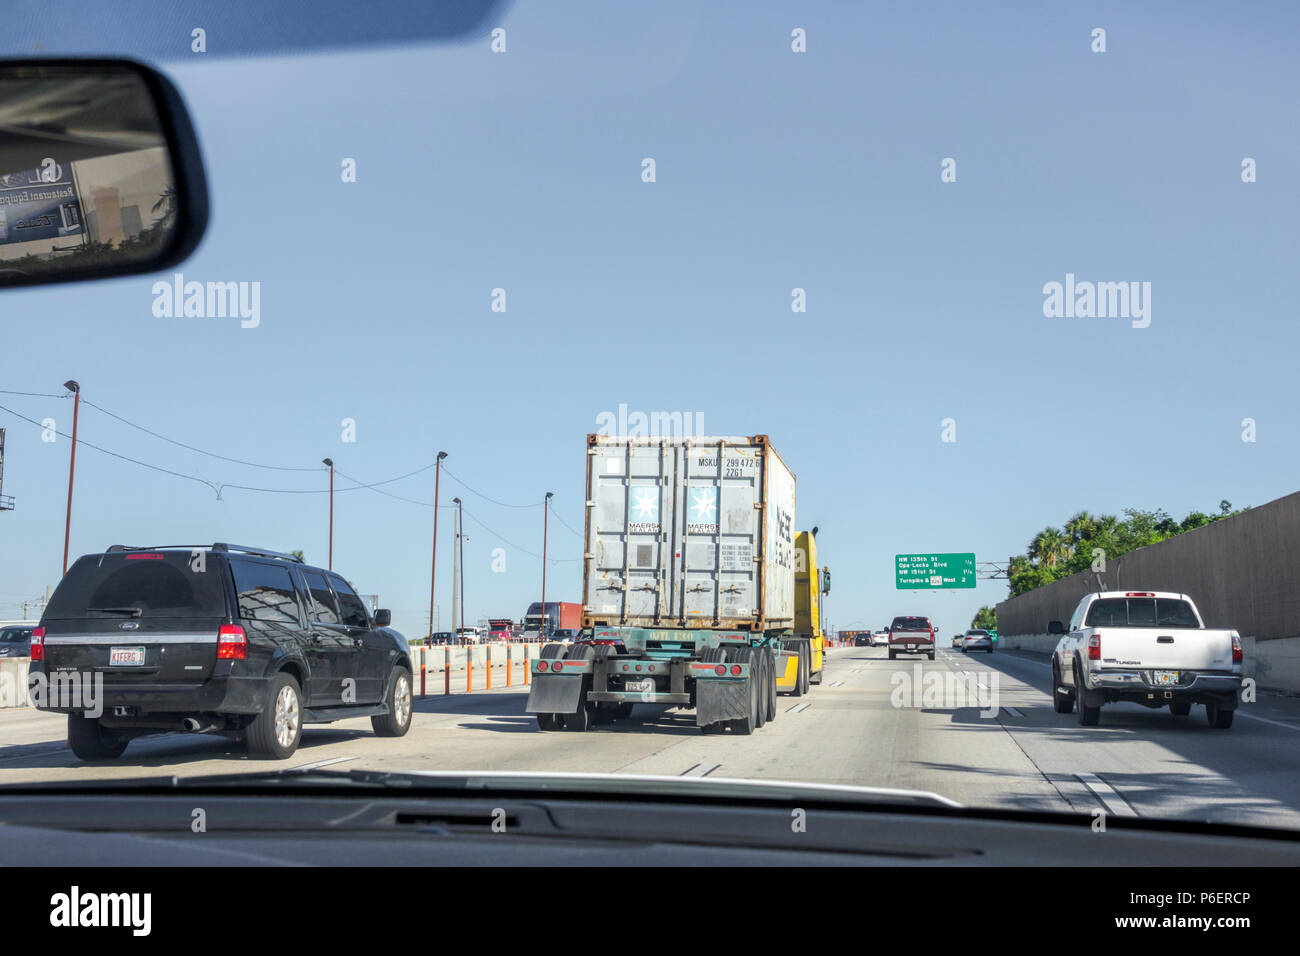 Miami Florida Interstate Highway I-95 I95 traffic truck lorry moving traffic roadway - Stock Image